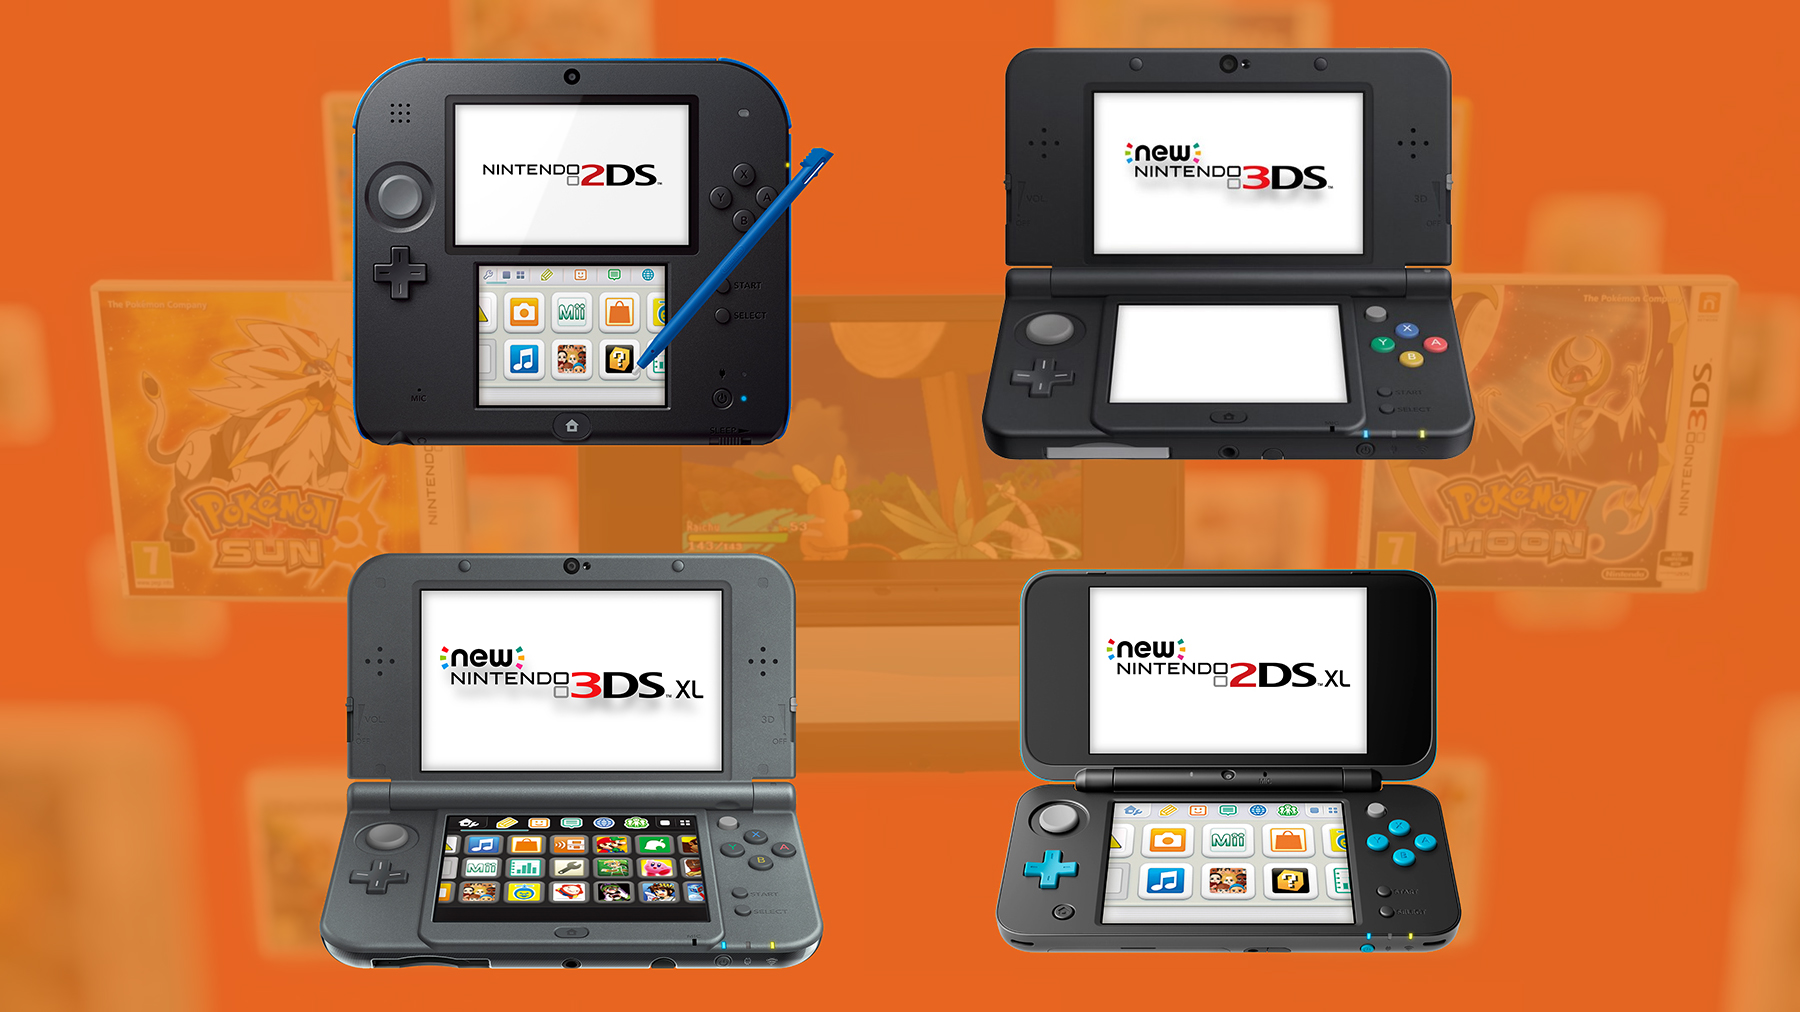 3Ds Future Releases nintendo will support the 3ds beyond 2017. is that a good